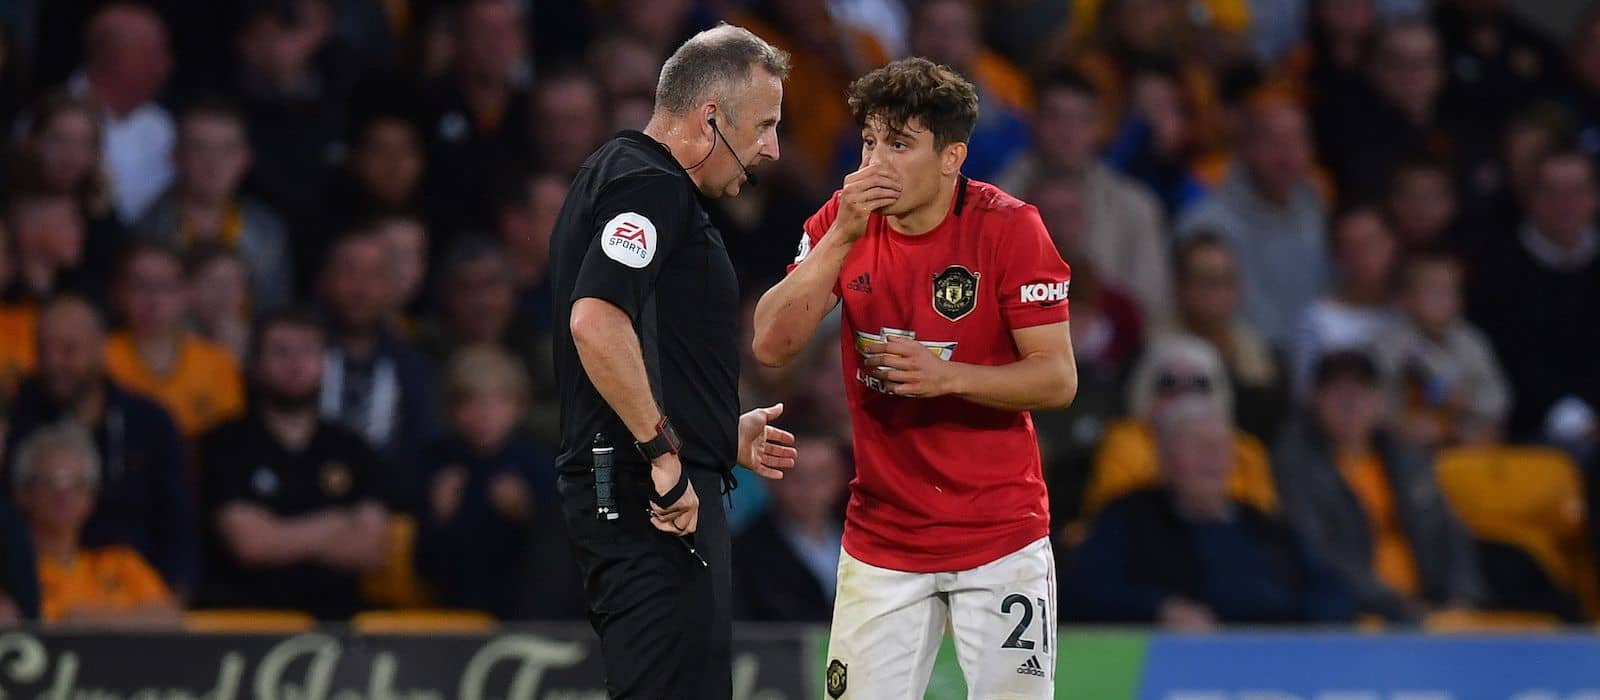 Ryan Giggs reveals Ole Gunnar Solskjaer chat about Daniel James